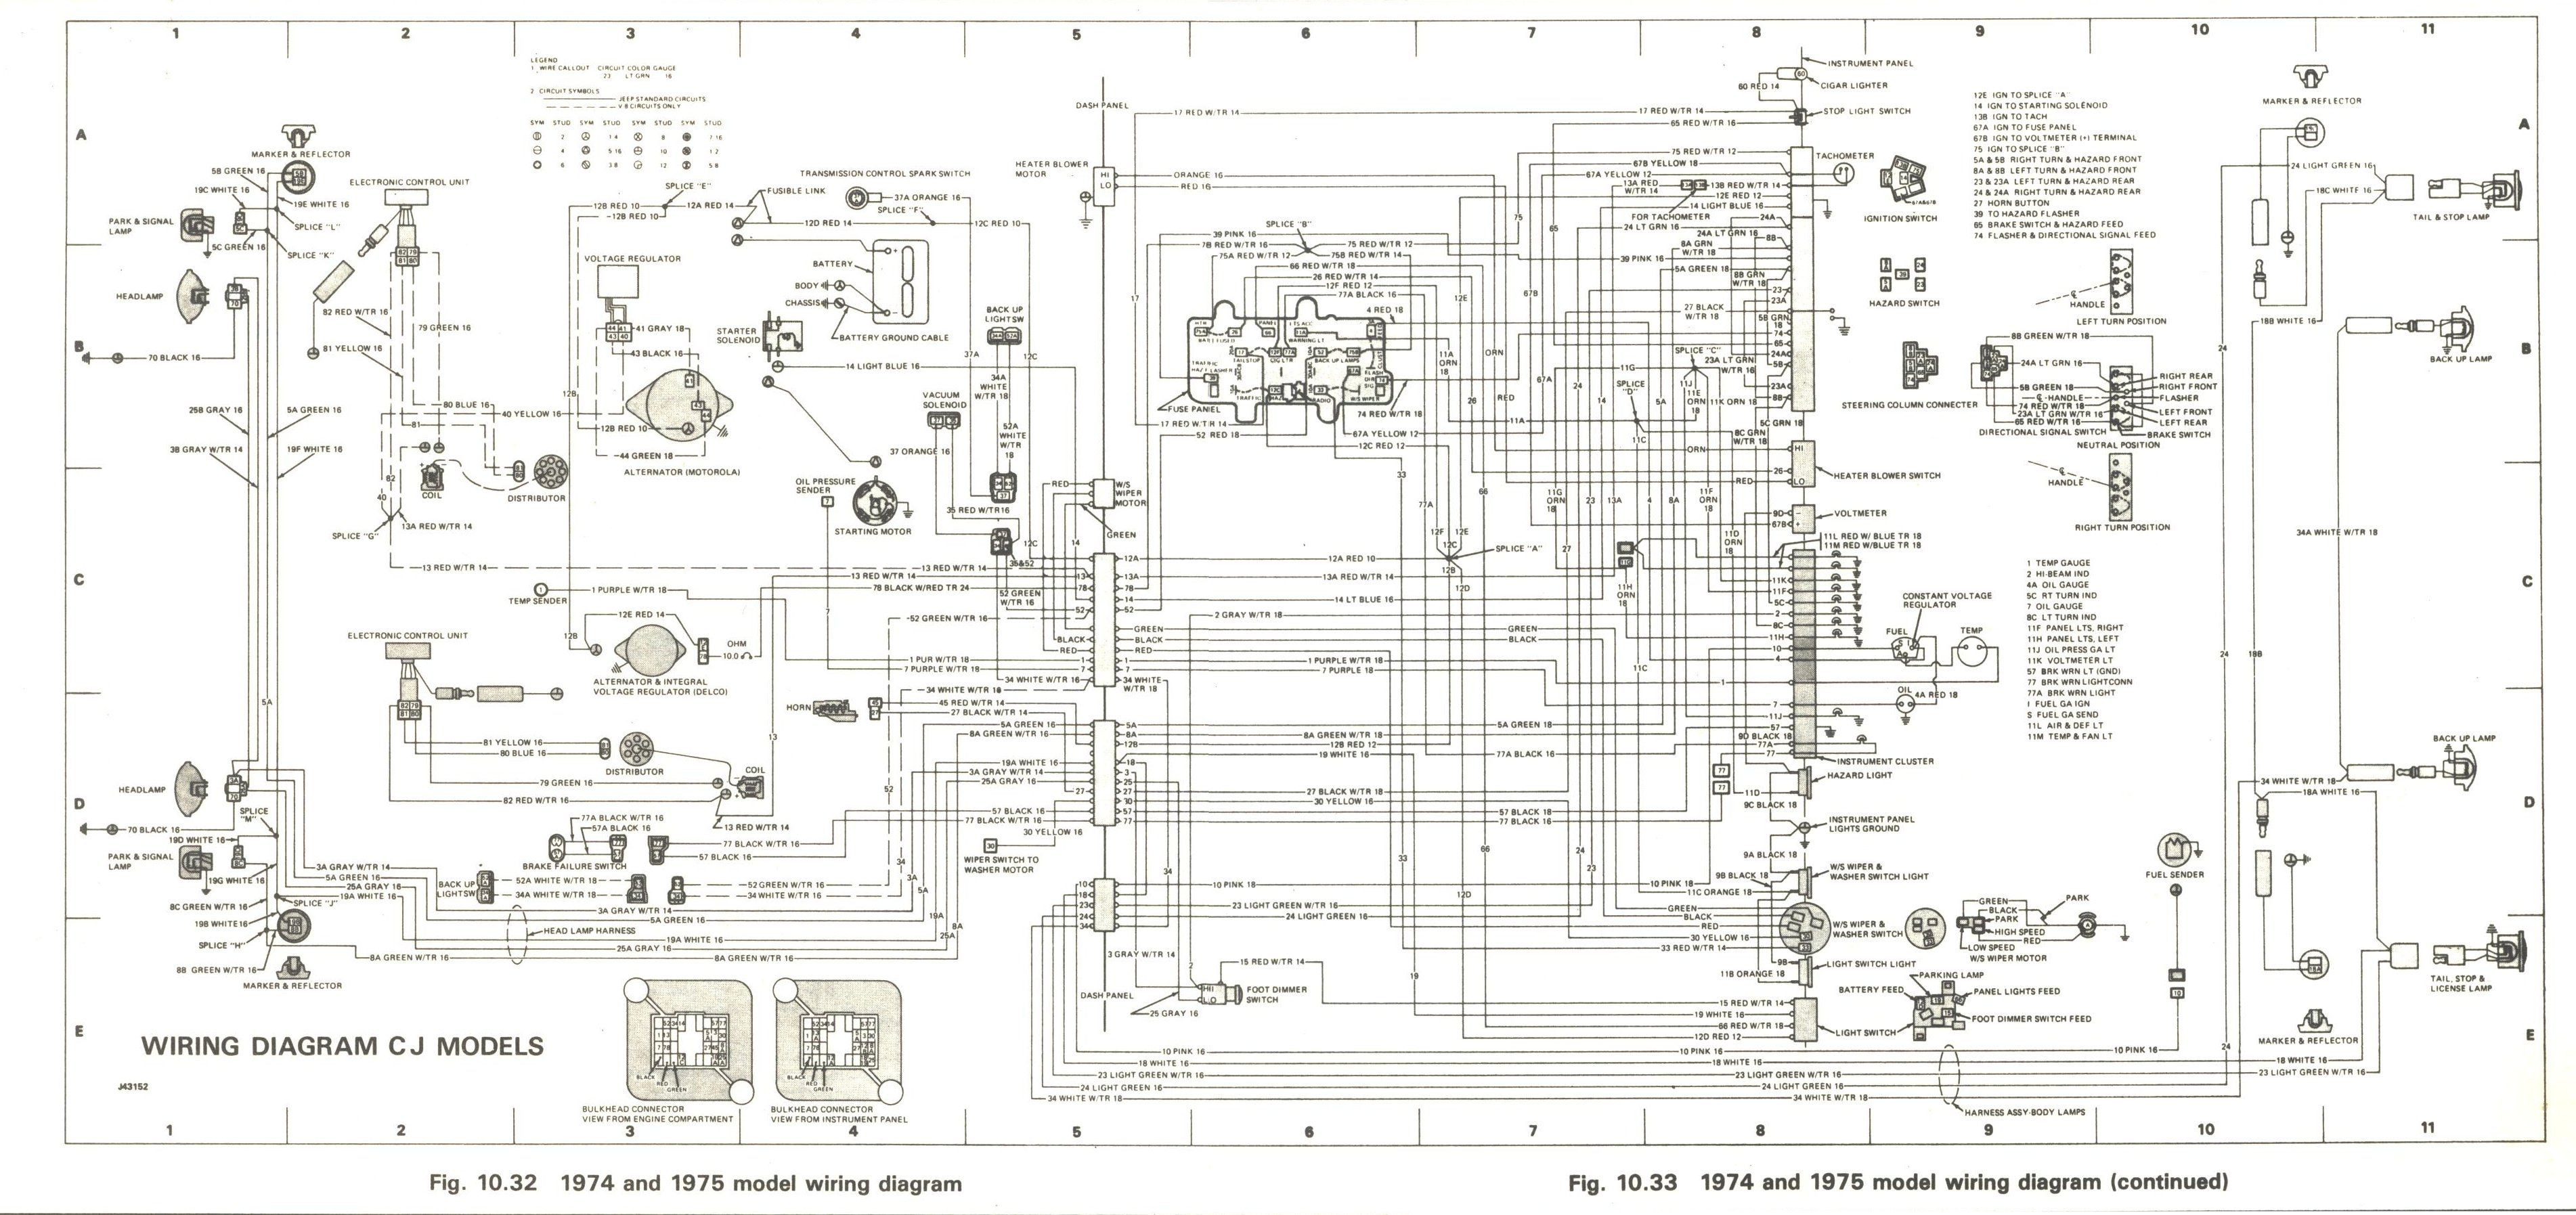 [WLLP_2054]   76 Cj5 Wiring Diagram - 380v 3 Phase Wiring Diagram for Wiring Diagram  Schematics | Mazda Rx4 Wiring Diagram |  | Wiring Diagram Schematics